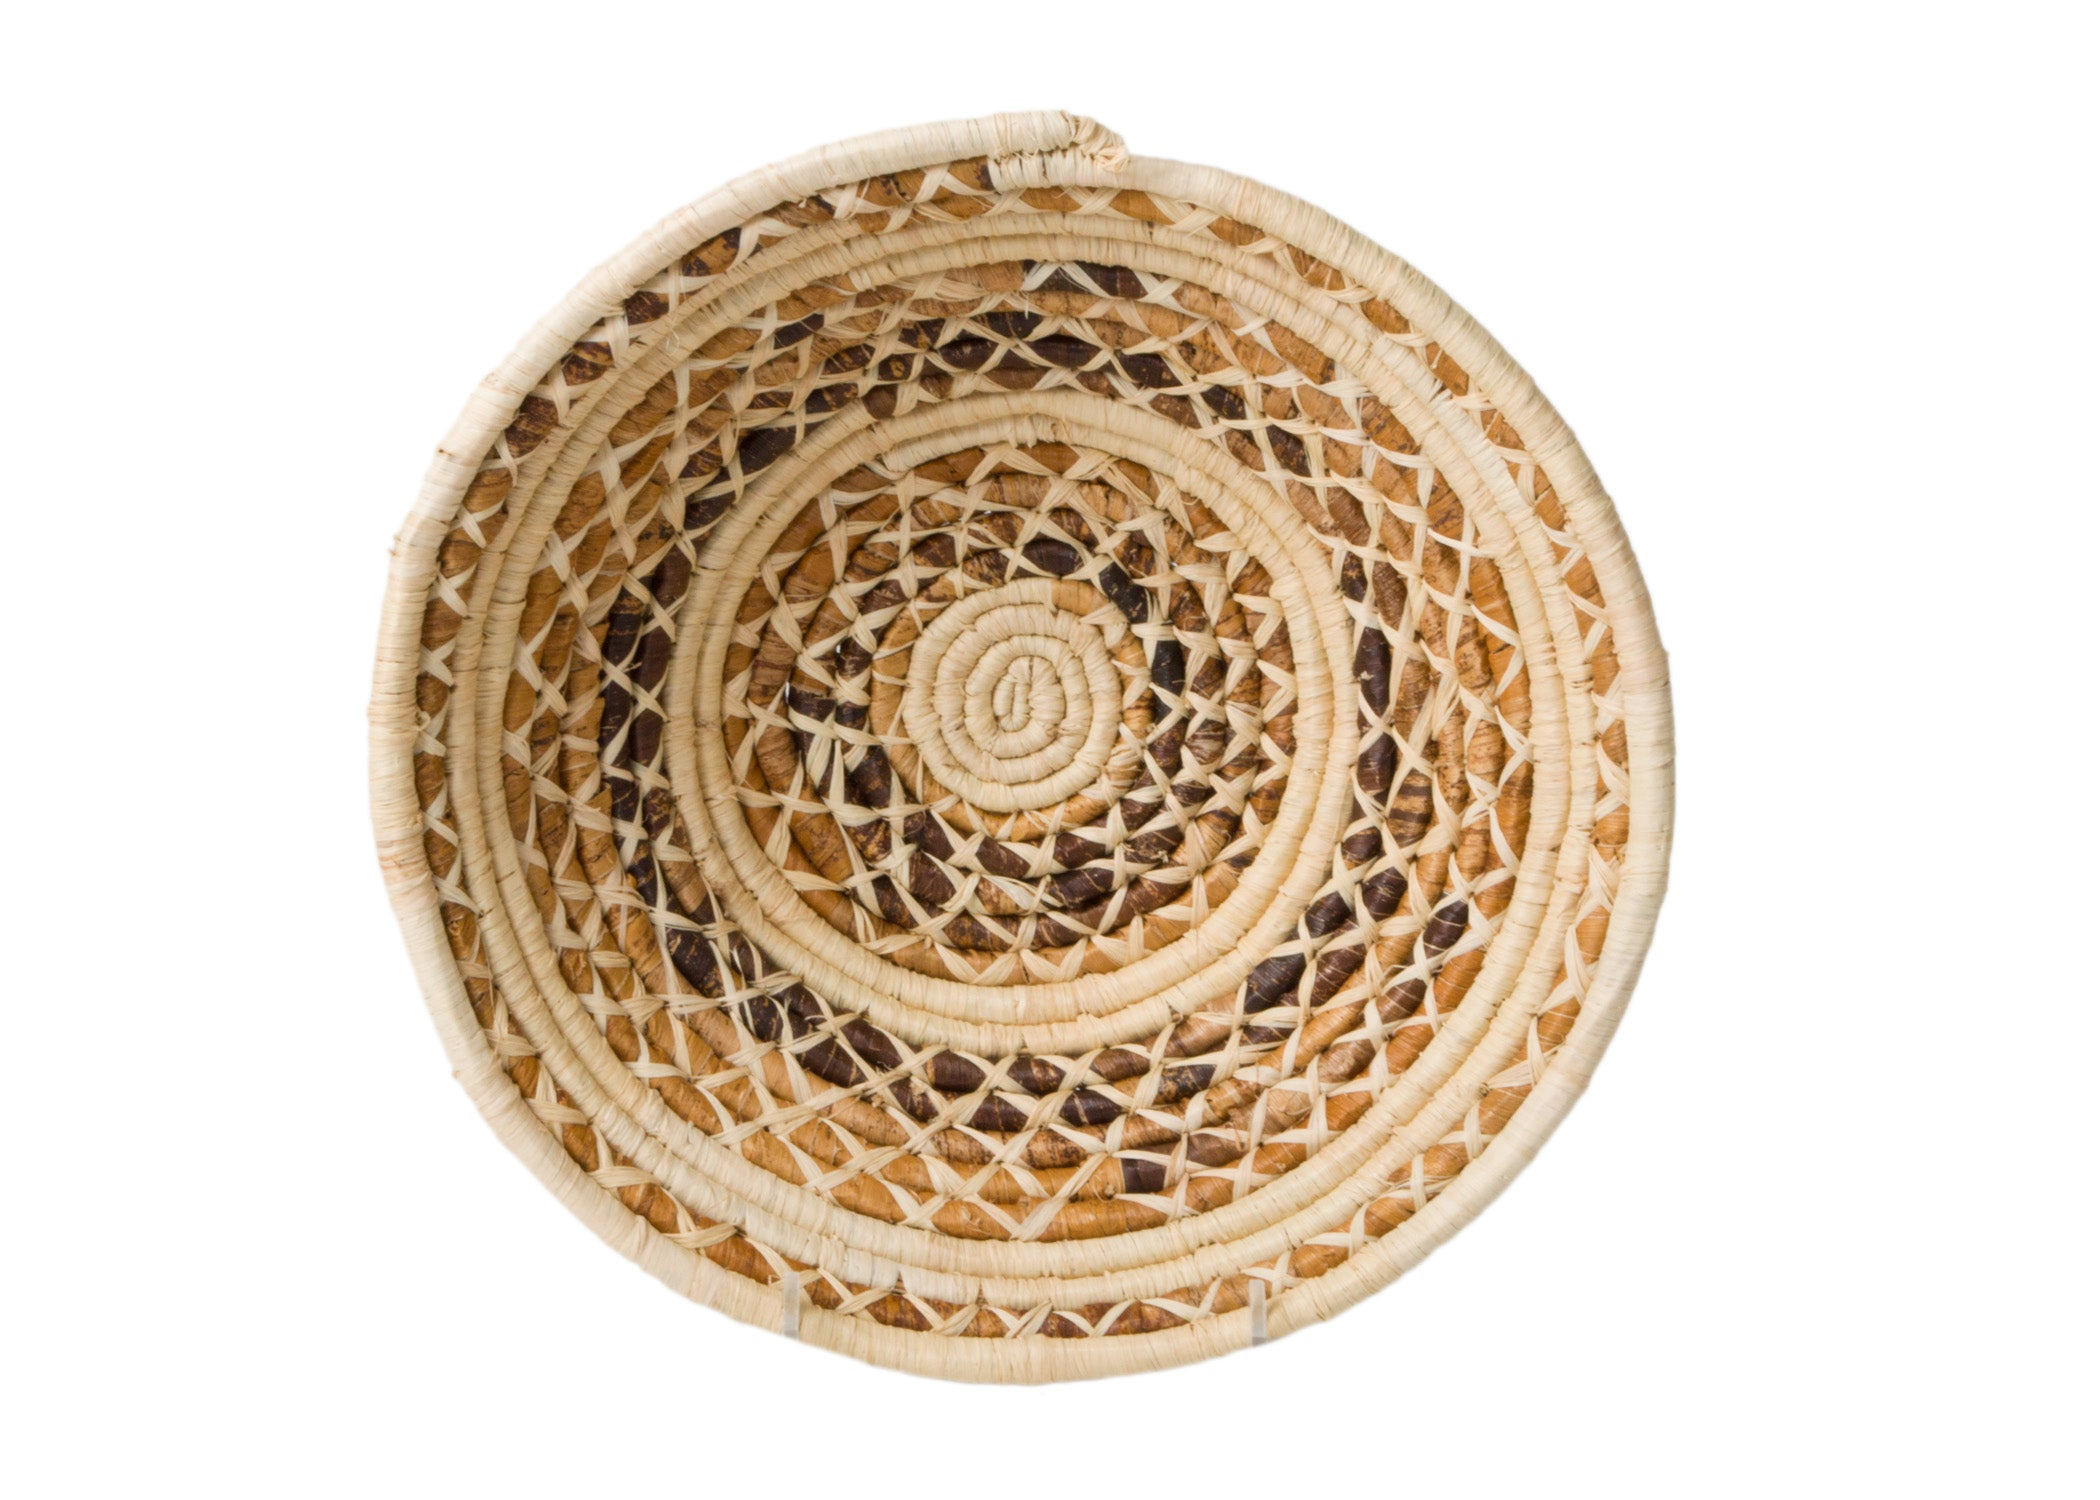 Banana Bark and Raffia Cross Stitch Large Bowl - KAZI - Artisan made high quality home decor and wall art